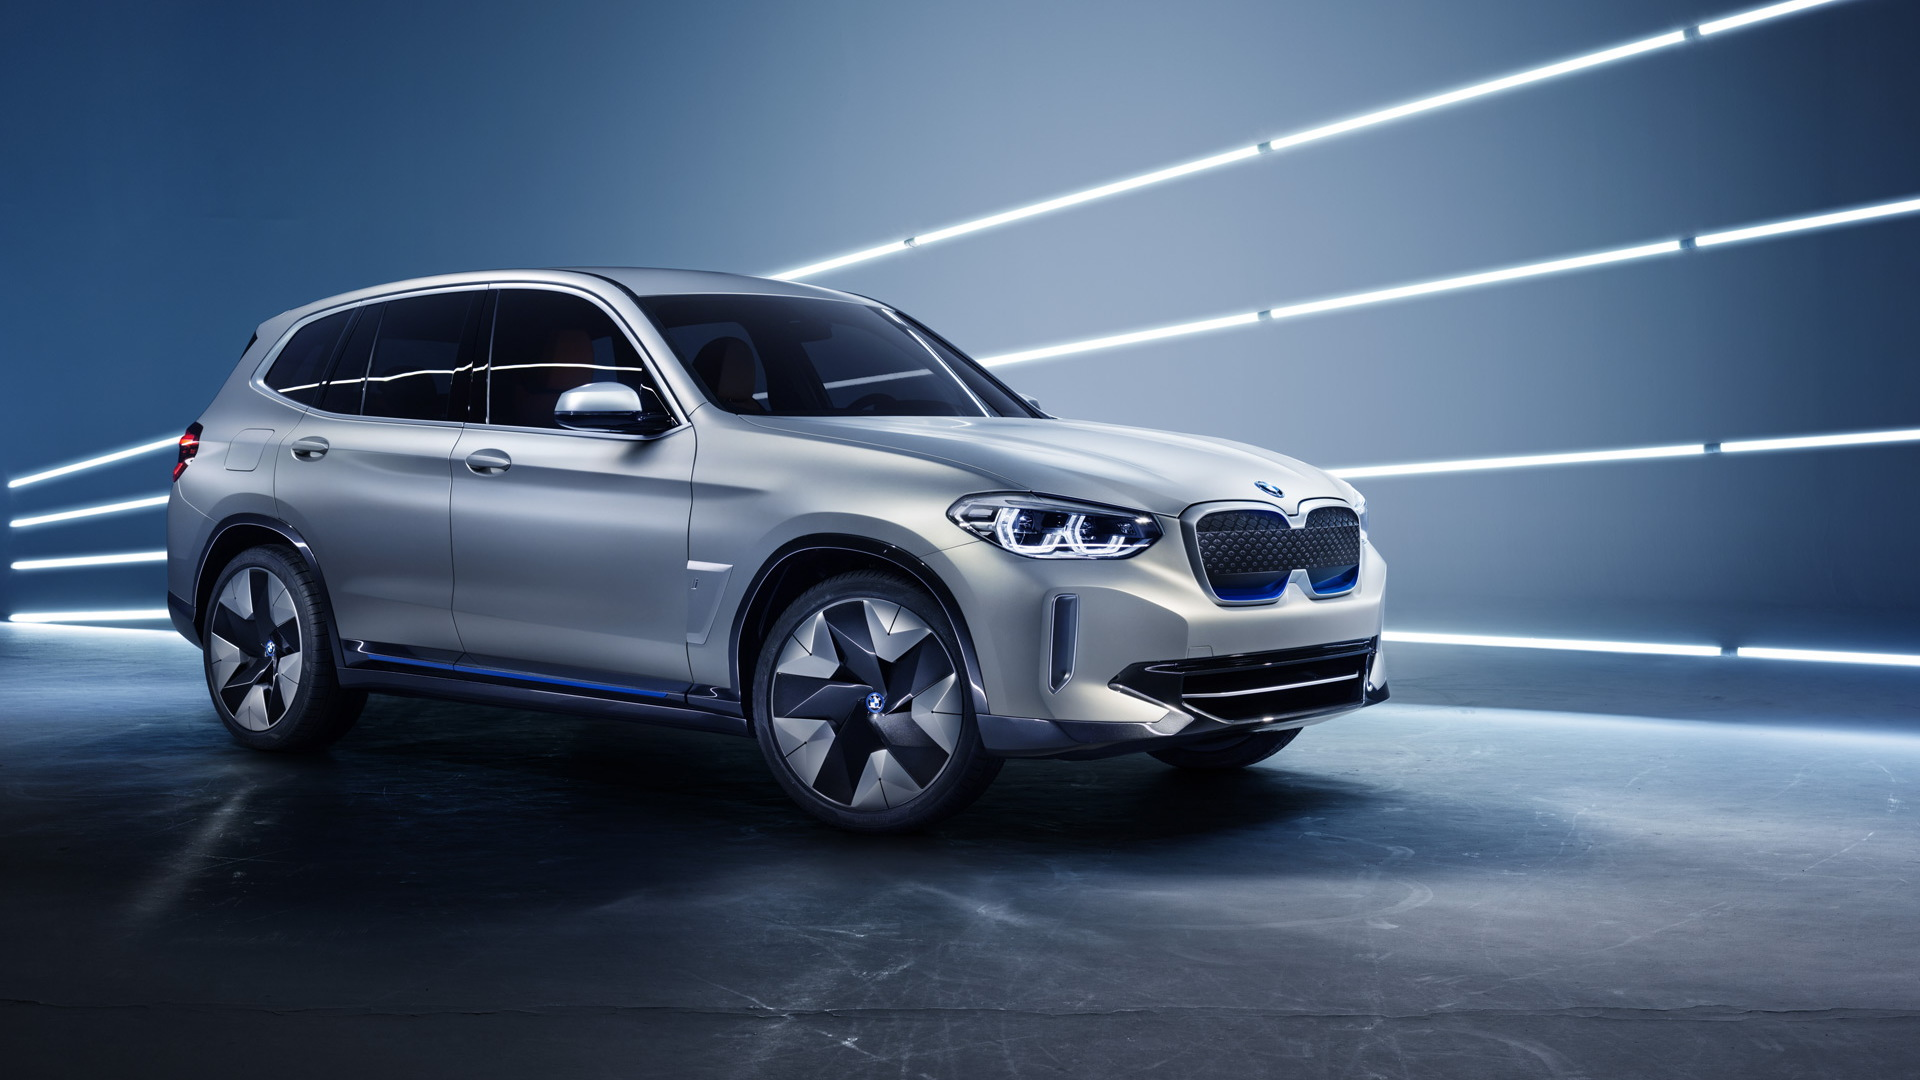 BMW's All-Electric iX3 SUV Will Graduate From Concept to Production Next Year